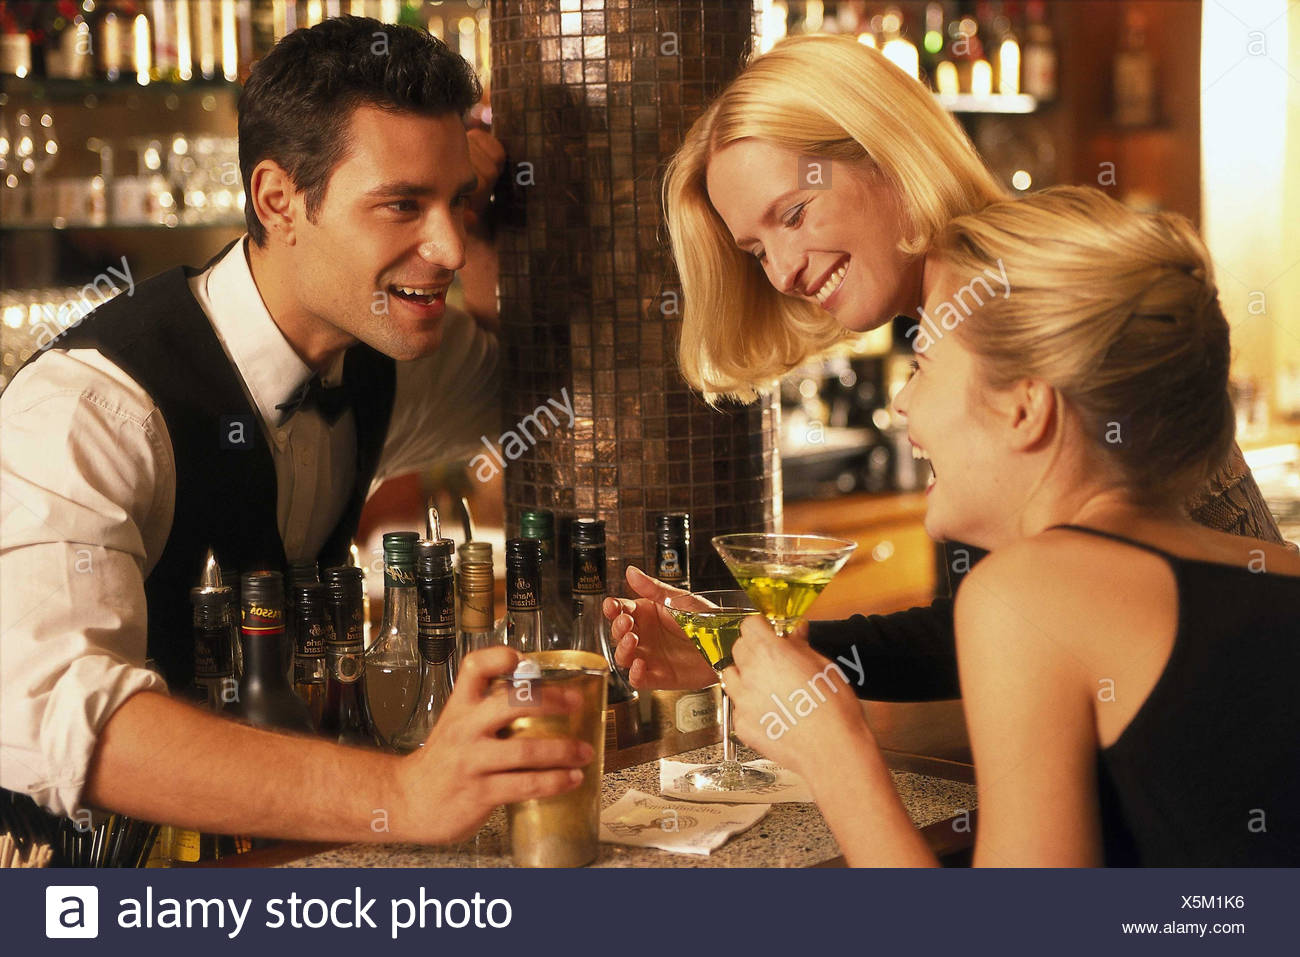 Locally, barkeepers, counter, women, young, happy, flirtation, conversation, women, bar, bar, go out, drink fun, friends, friends, entertainment, fun, amusement Stock Photo